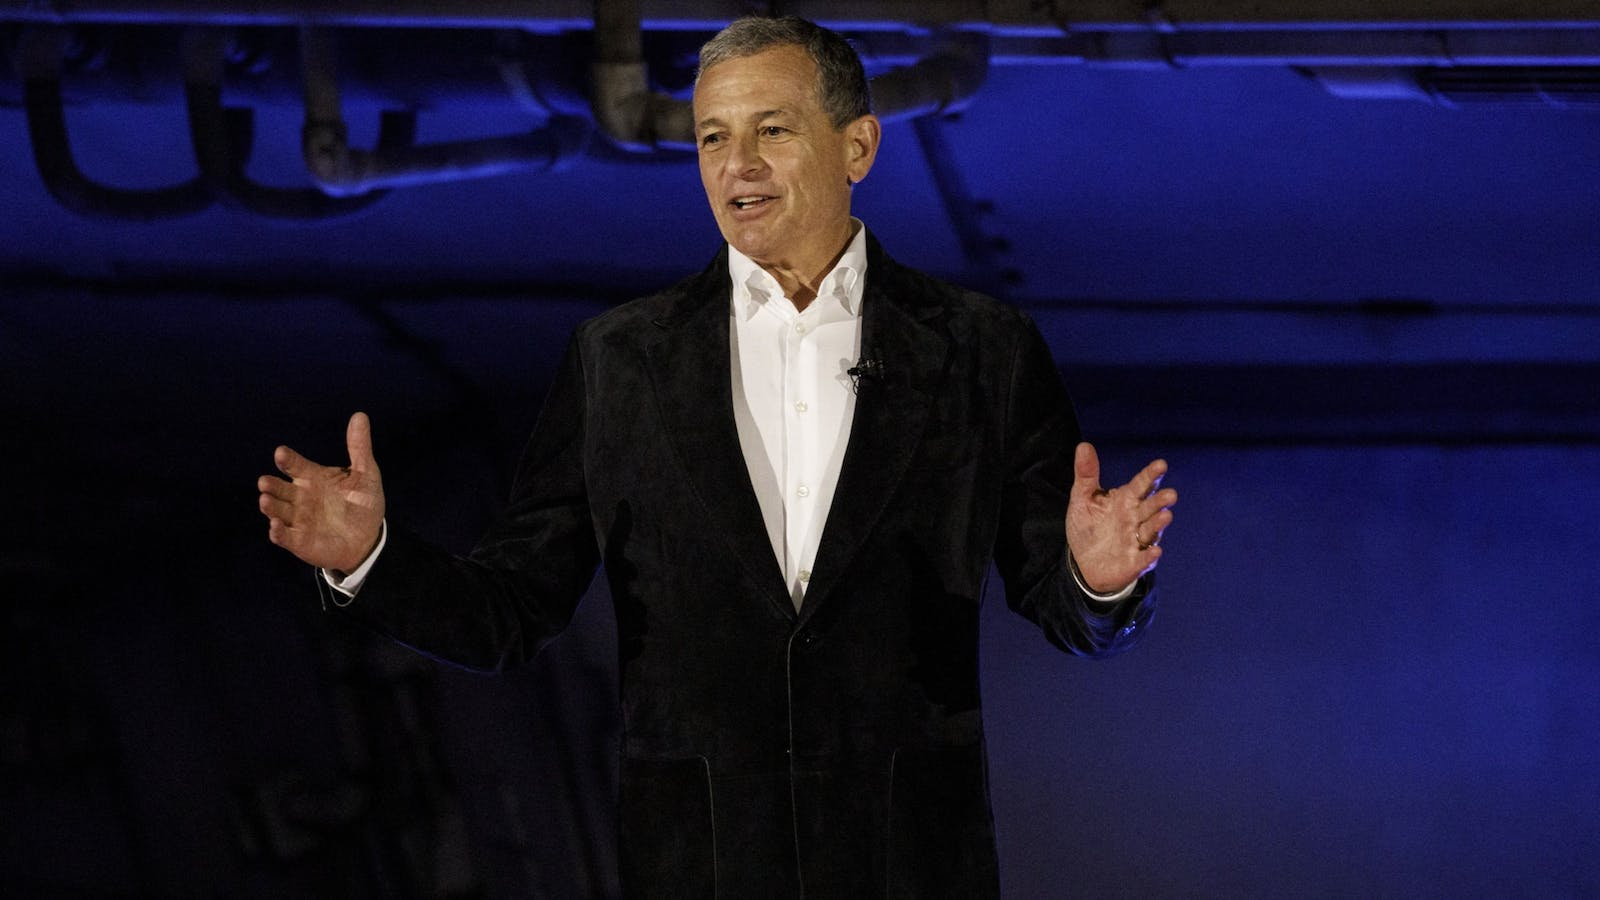 Disney CEO Bob Iger. Photo by Bloomberg